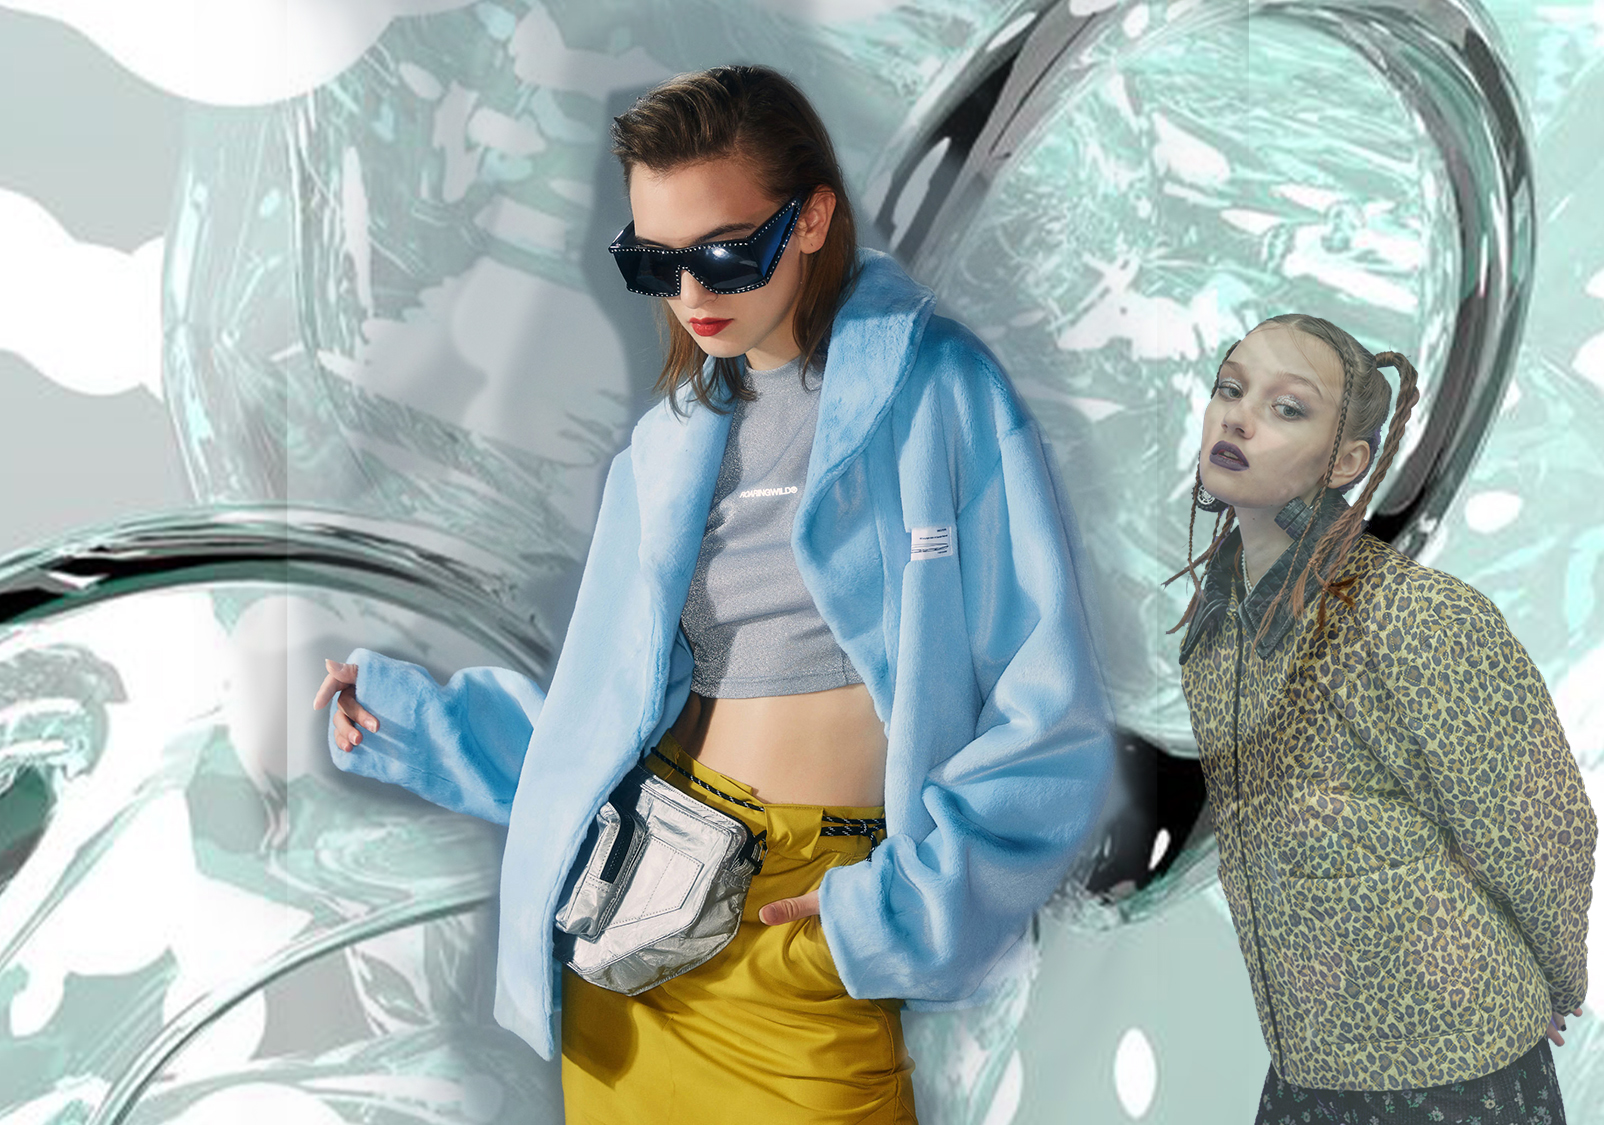 Fashion -- The Comprehensive Analysis of Street Fashion Designer Brands